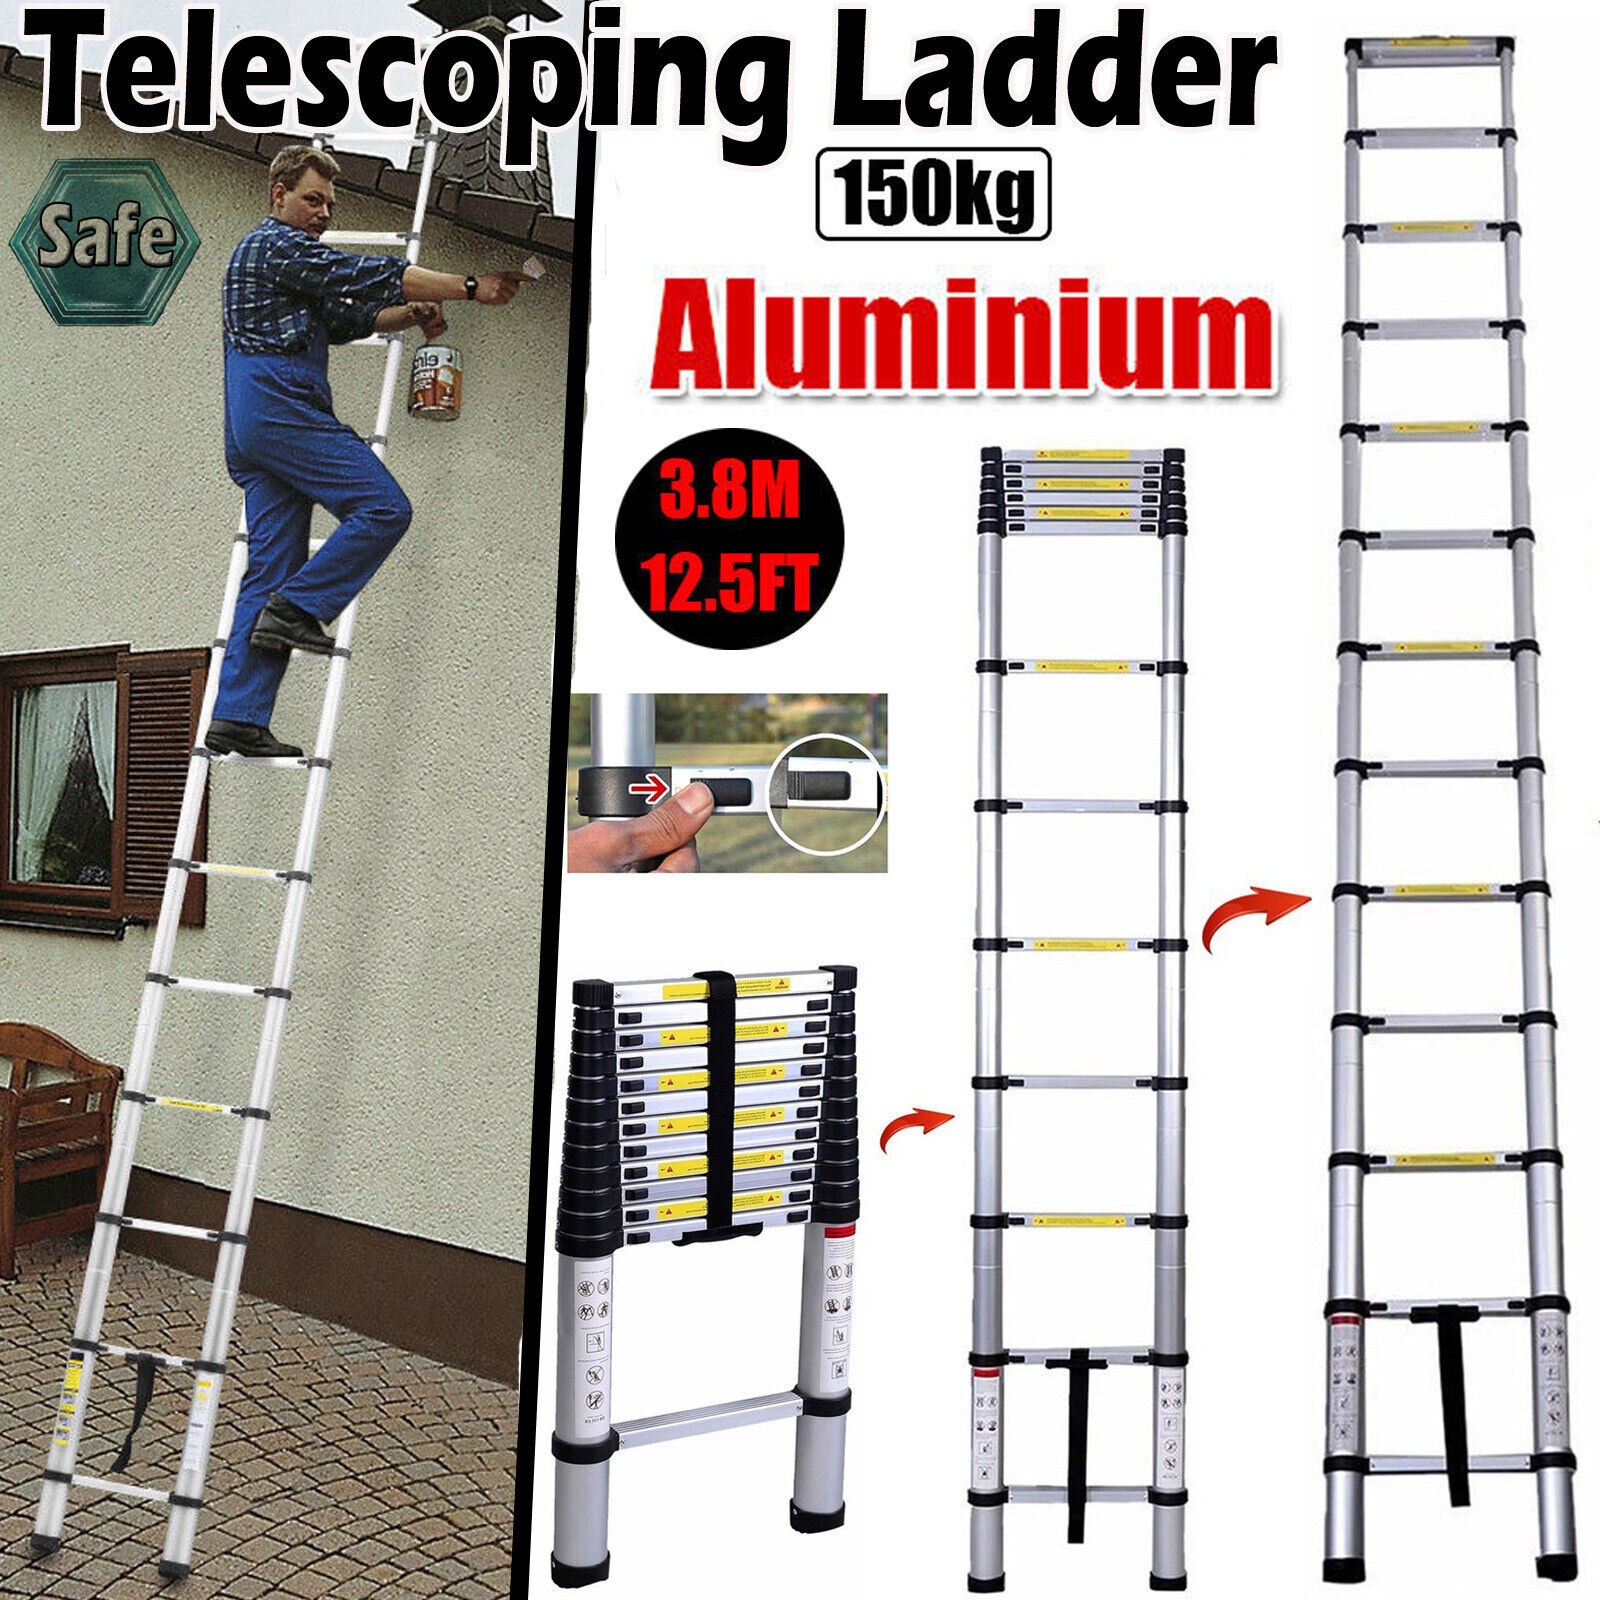 12.5FT Aluminium Ladders Telescoping Multi-Purpose Extension Ladder